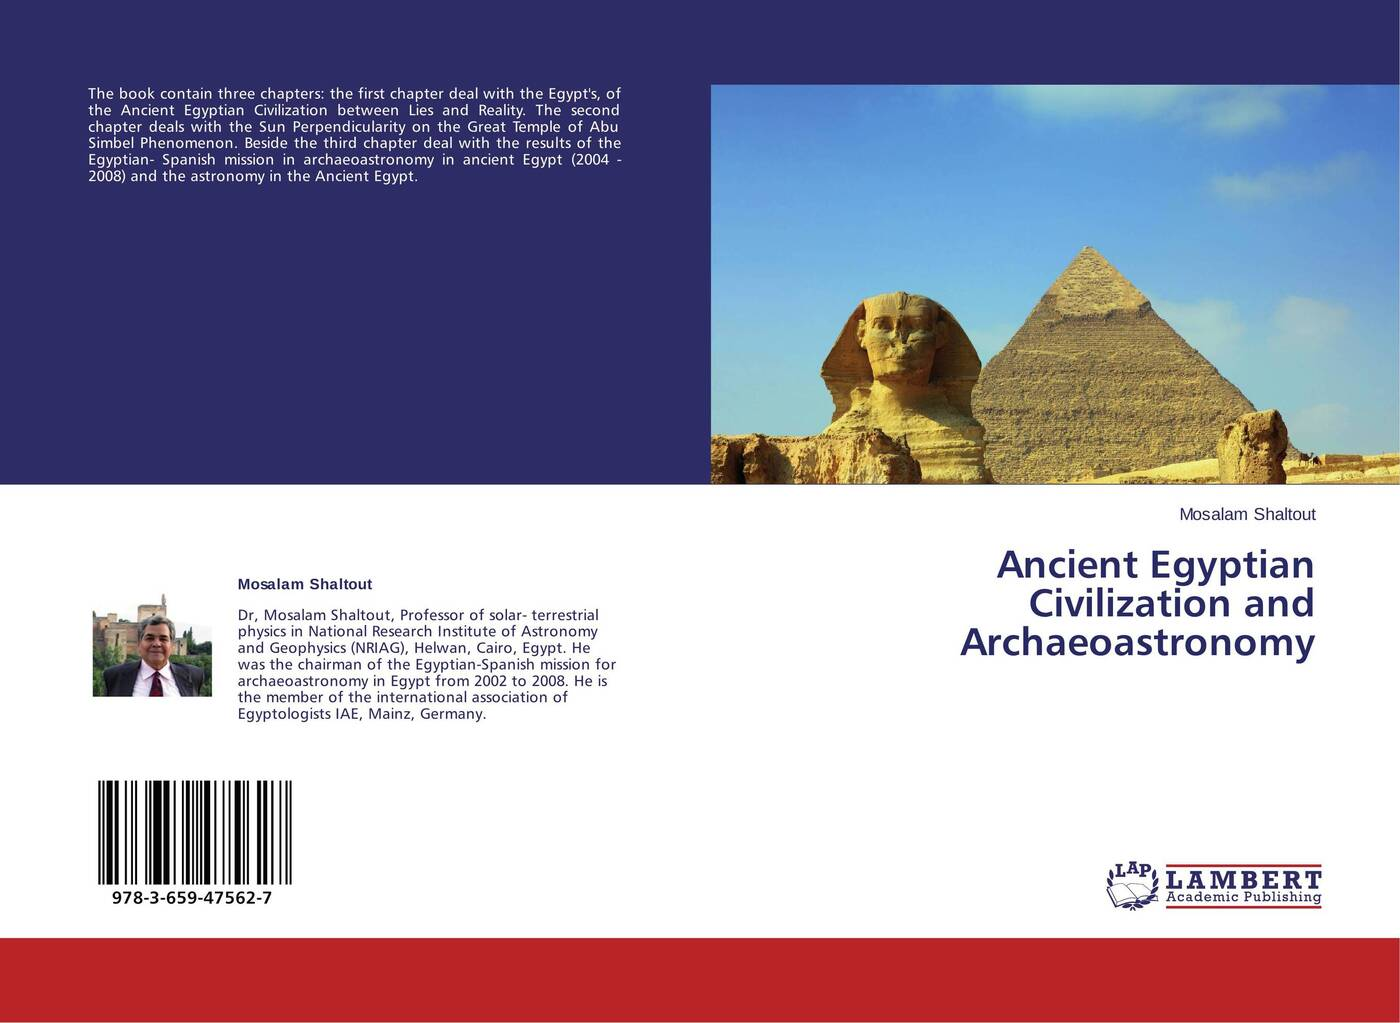 Mosalam Shaltout Ancient Egyptian Civilization and Archaeoastronomy куртка the ancient with the vintage